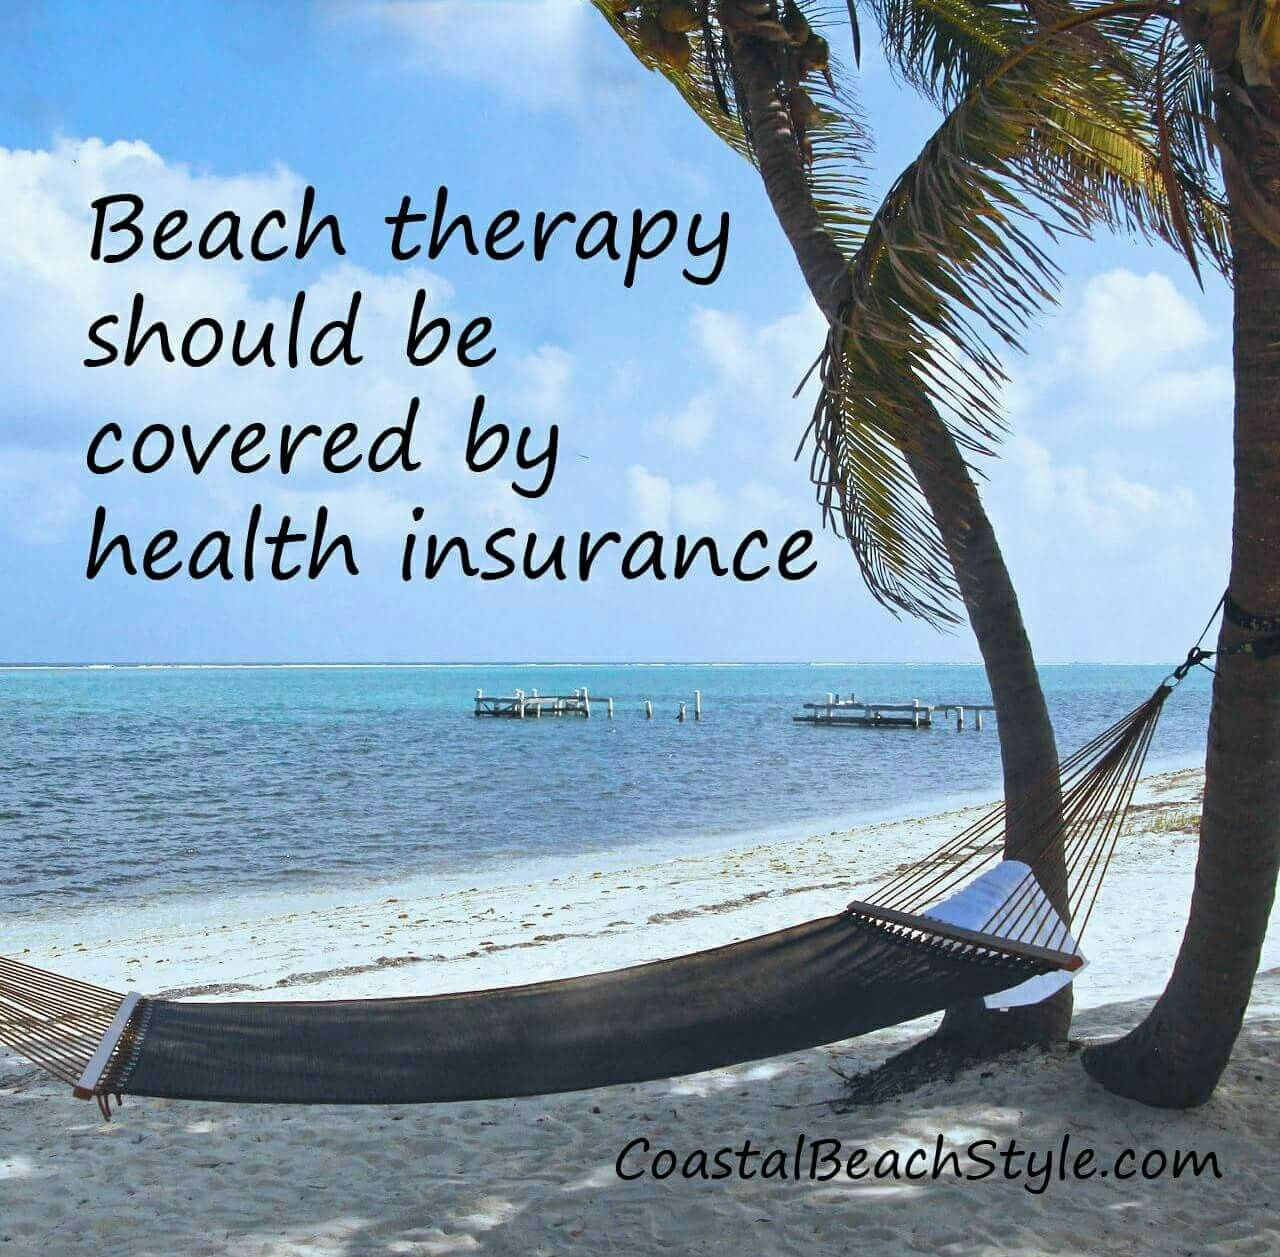 Health Insurance Quotes Florida Beach Therapy Should Be Coveredhealth Insuranceof Course I'm